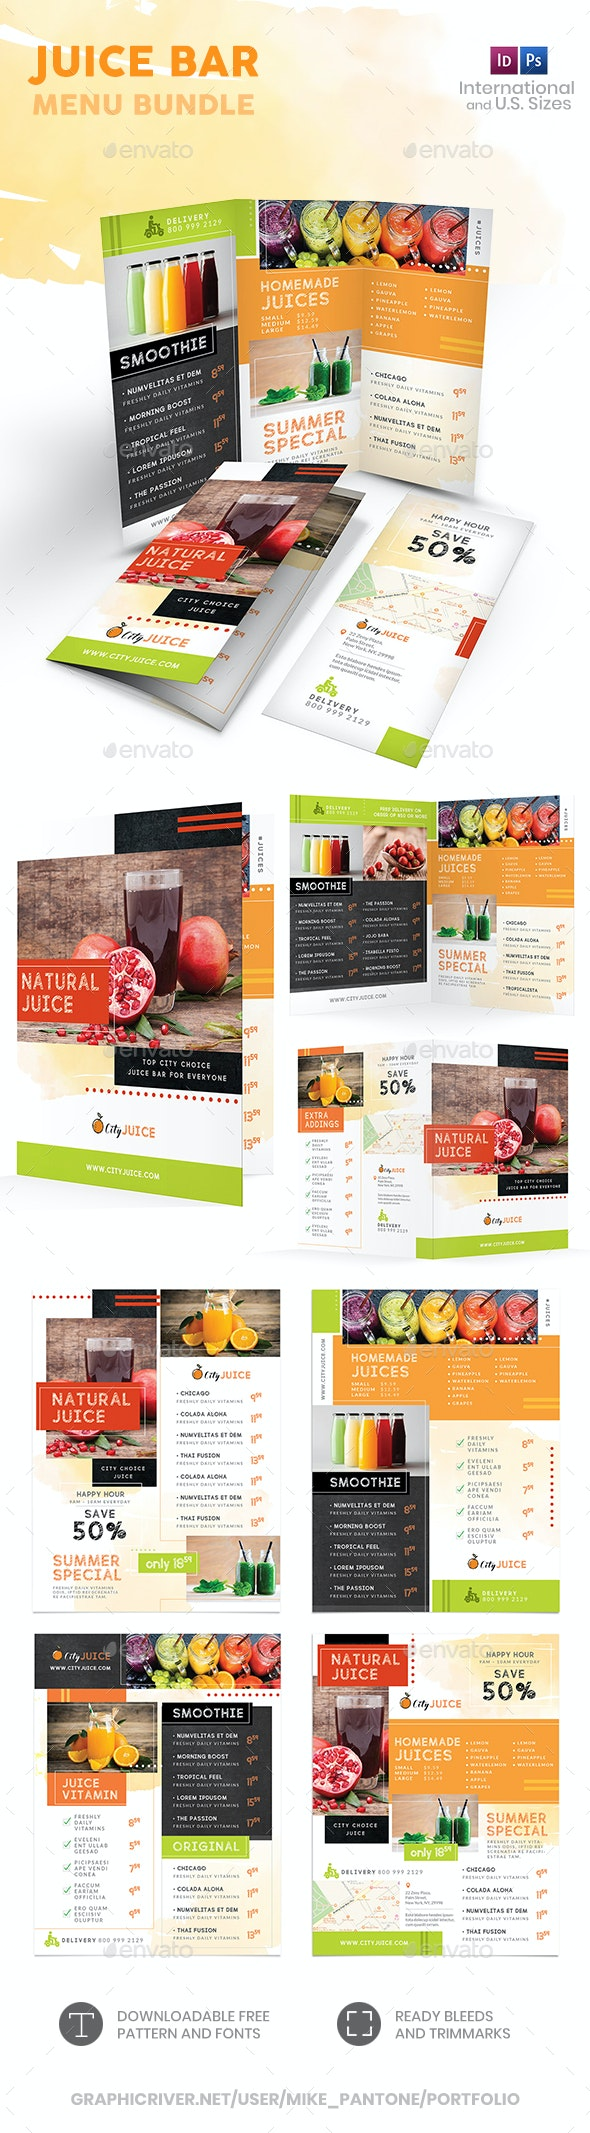 Juice Bar Menu Print Bundle 2 - Food Menus Print Templates